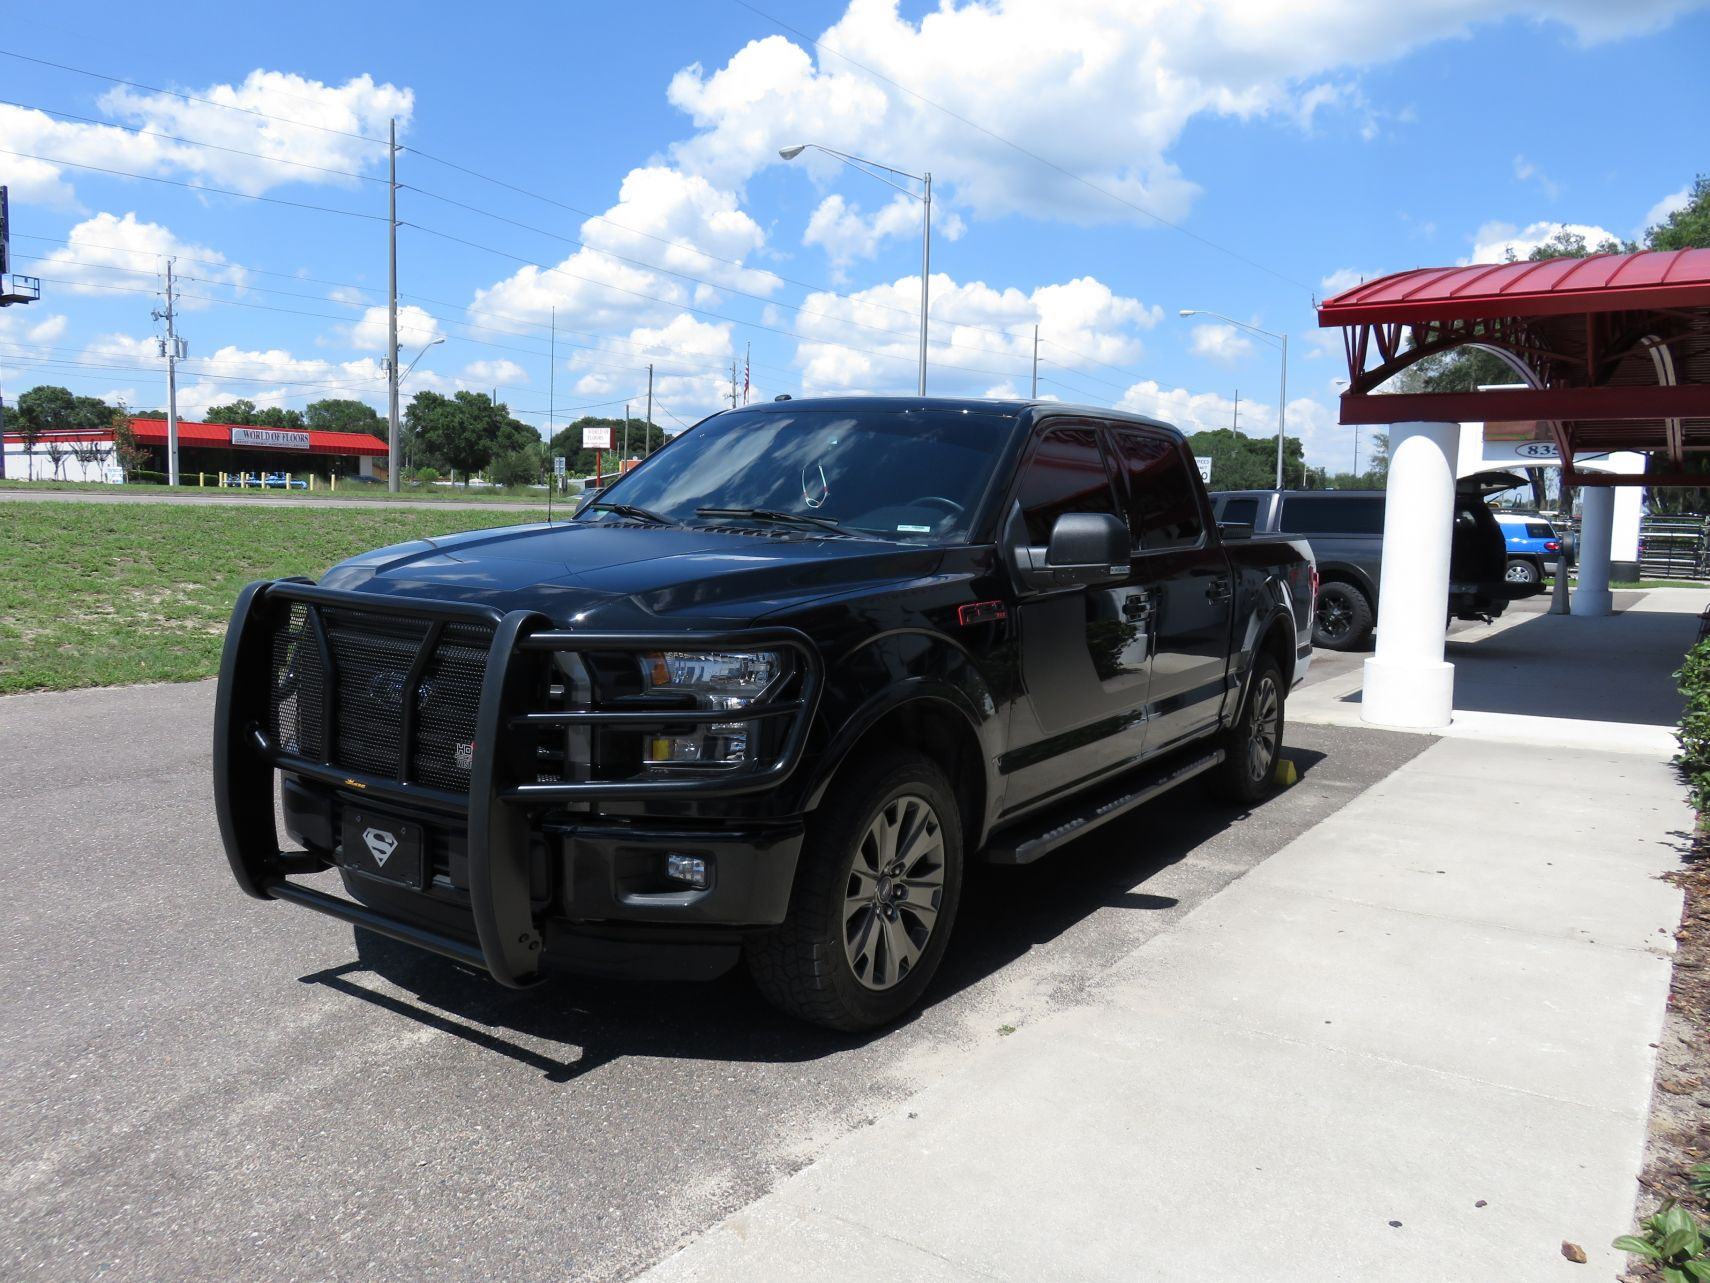 Blacked Out Ford F150 >> Blacked Out 2017 Ford F150 with Grille Guard - TopperKING : TopperKING | Providing all of Tampa ...